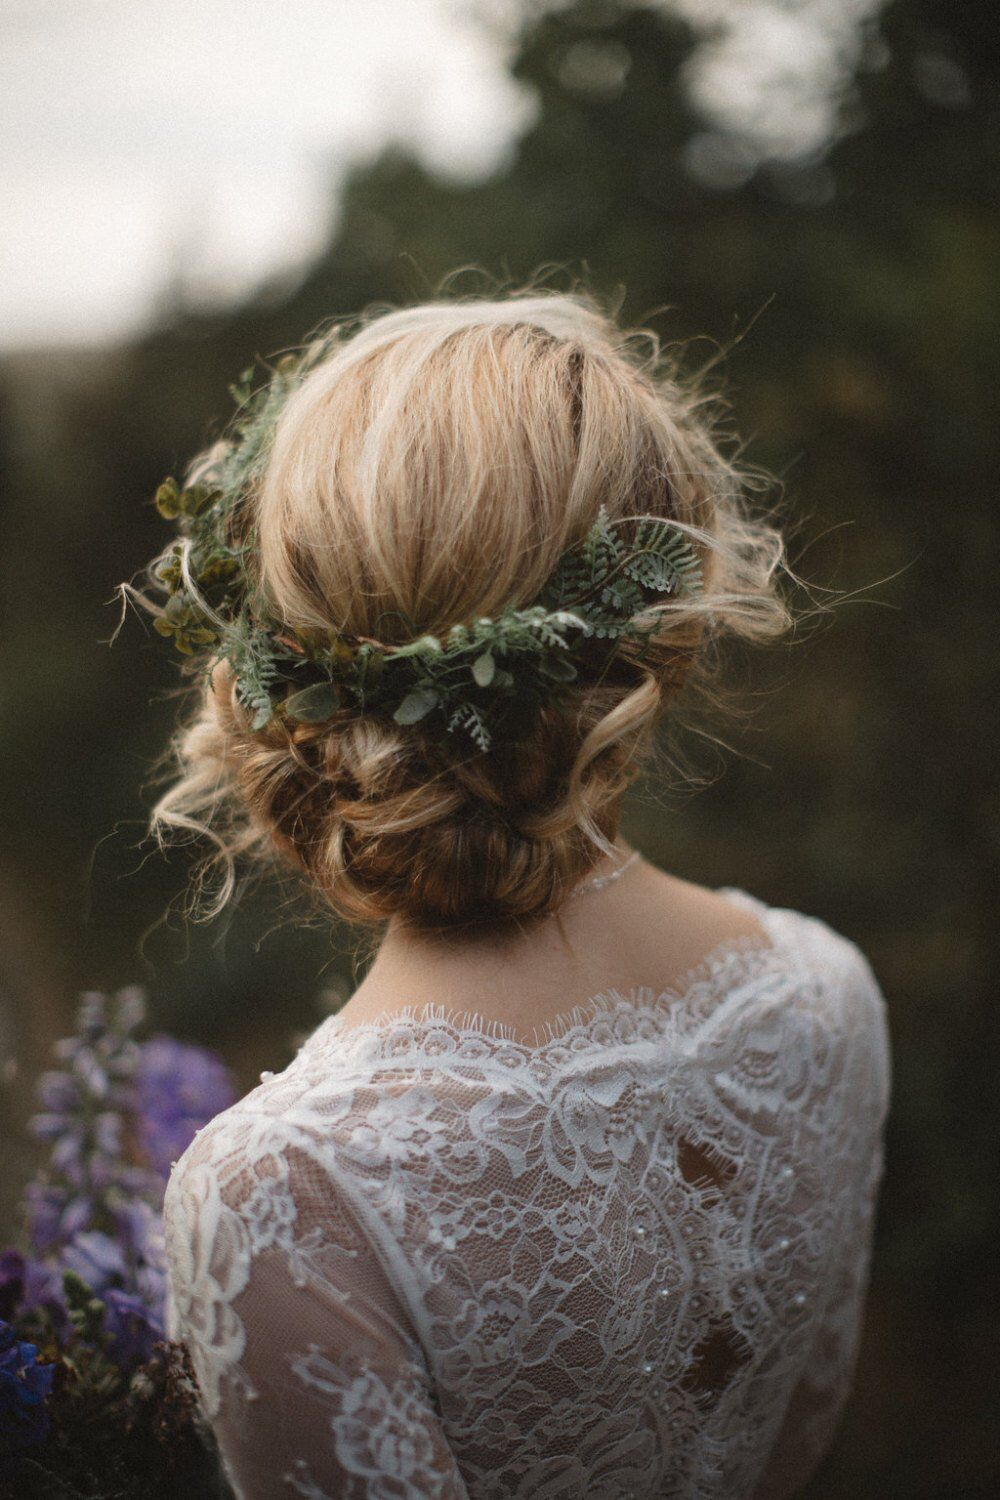 pin by a lovin' spoonful on wedding inspiration in 2019